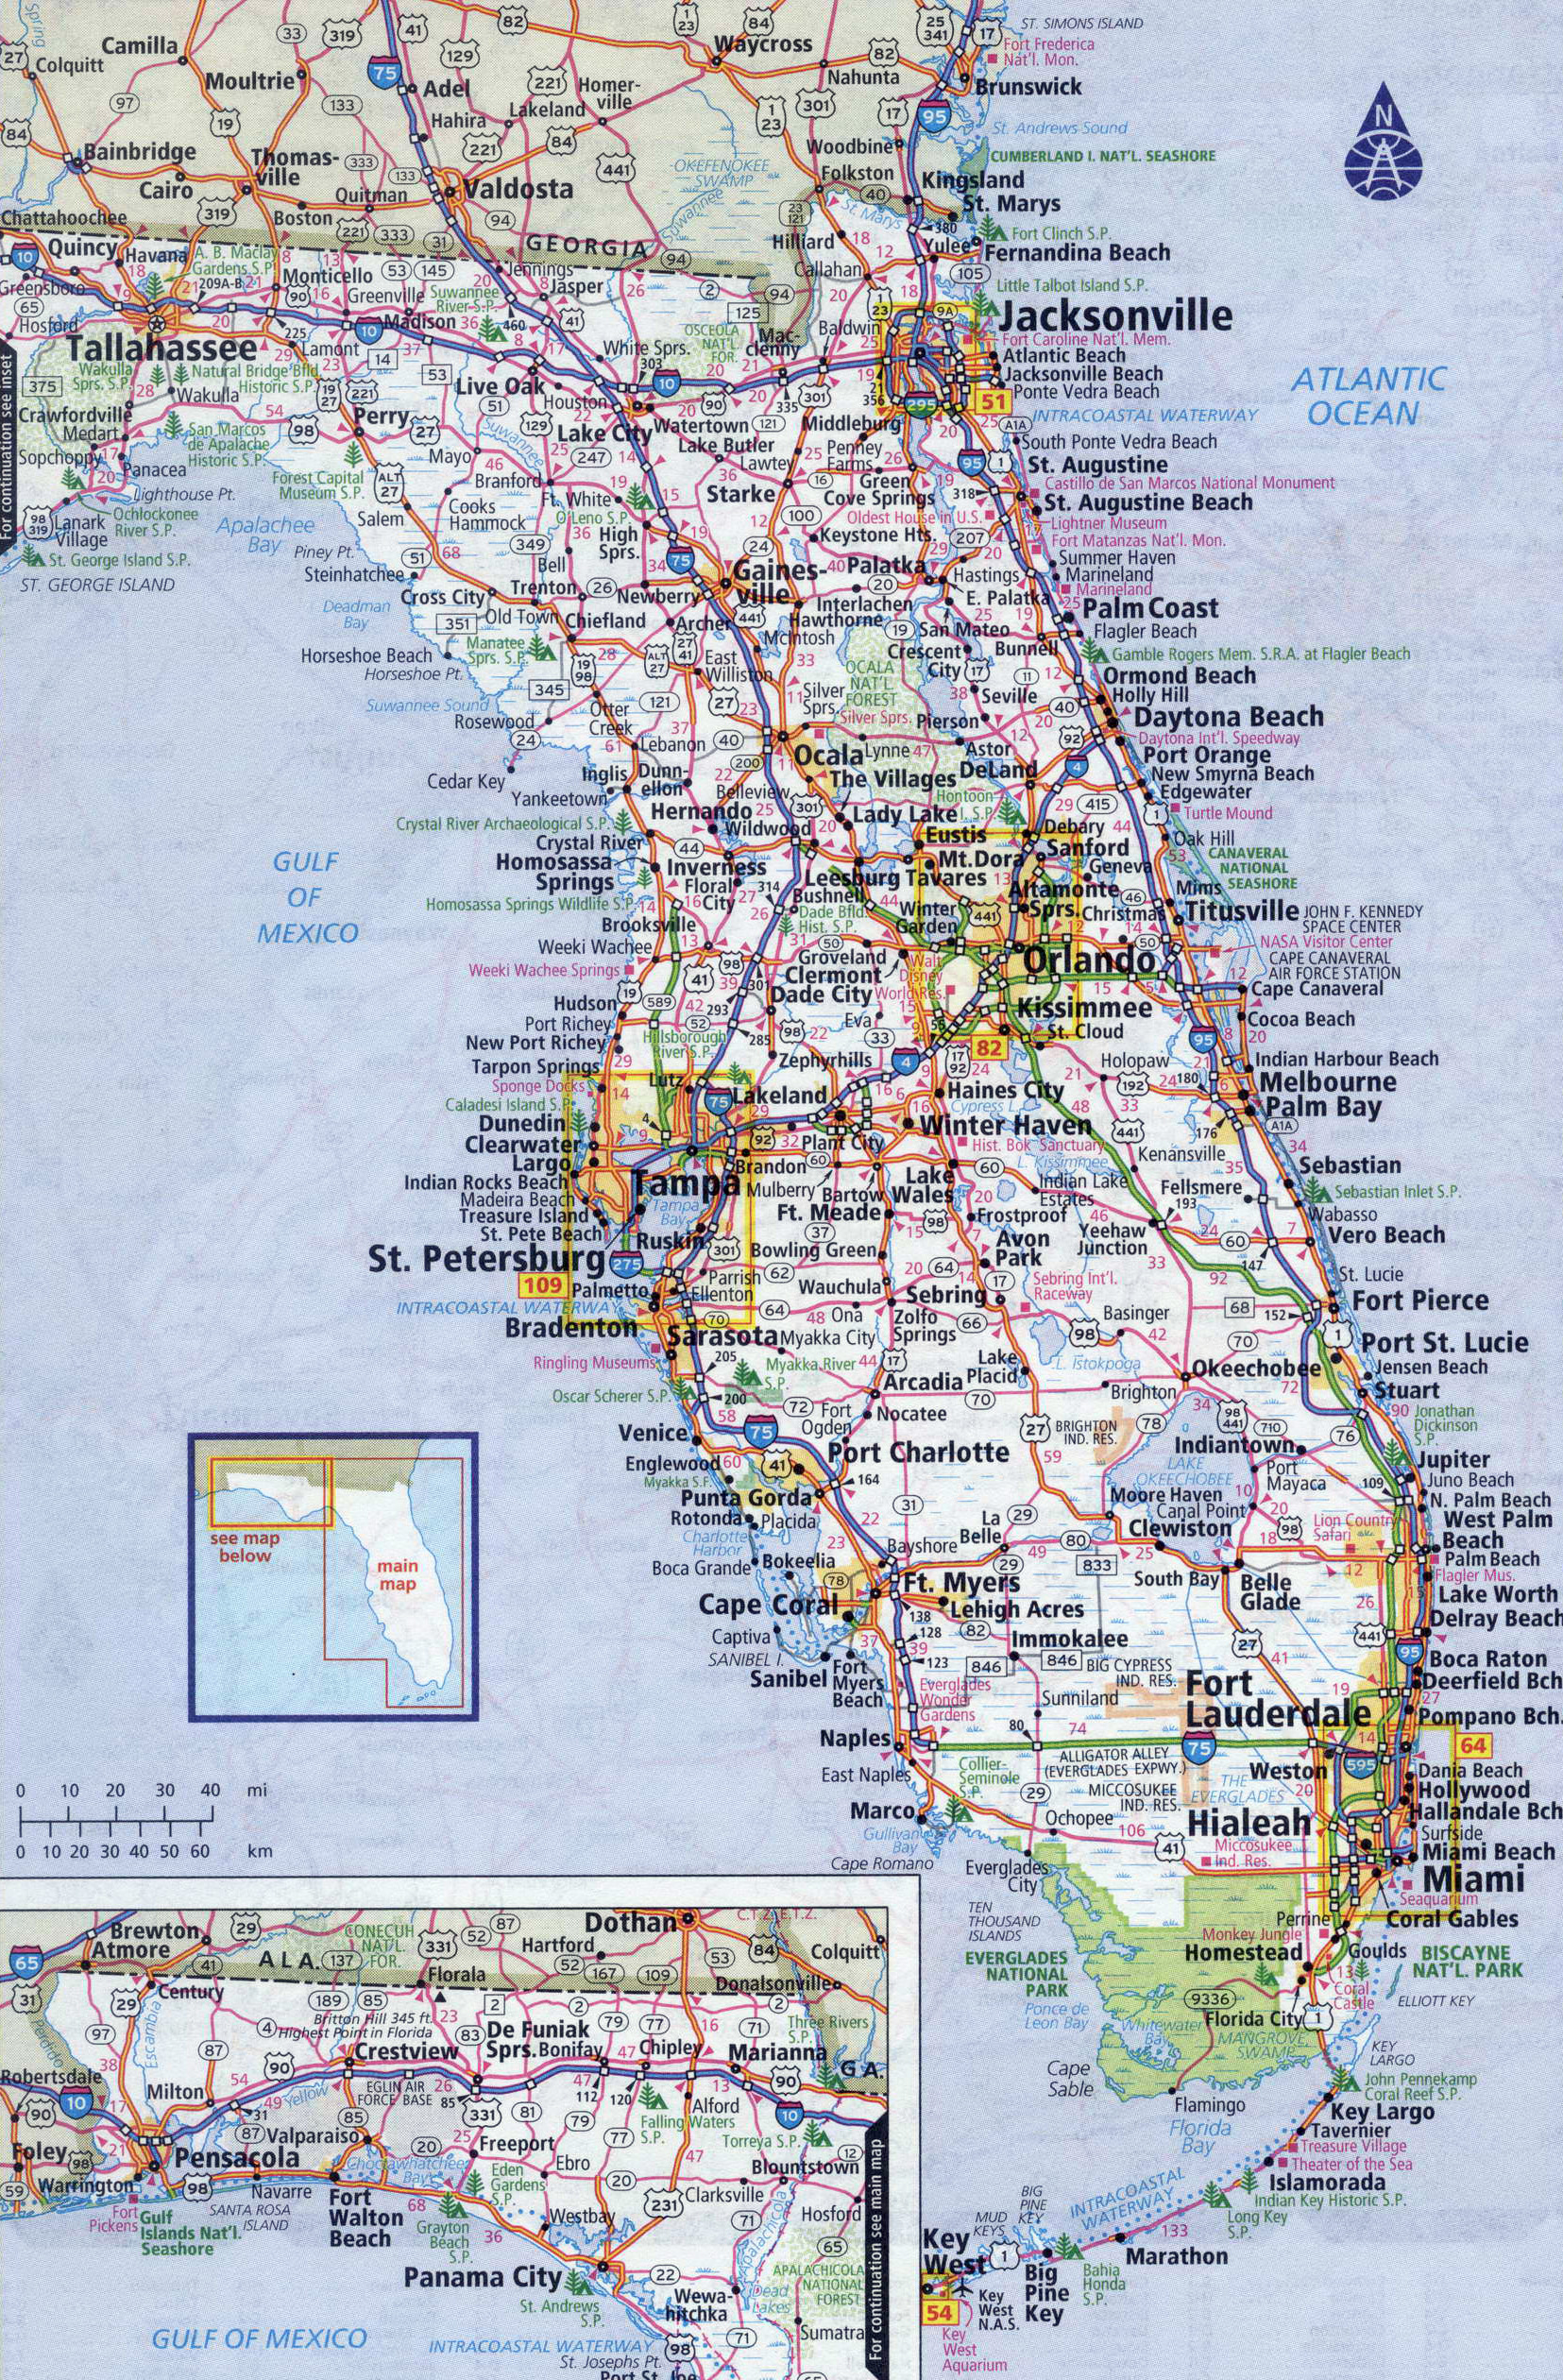 Official Road Map of Florida by FLORIDA on oldimprints.com